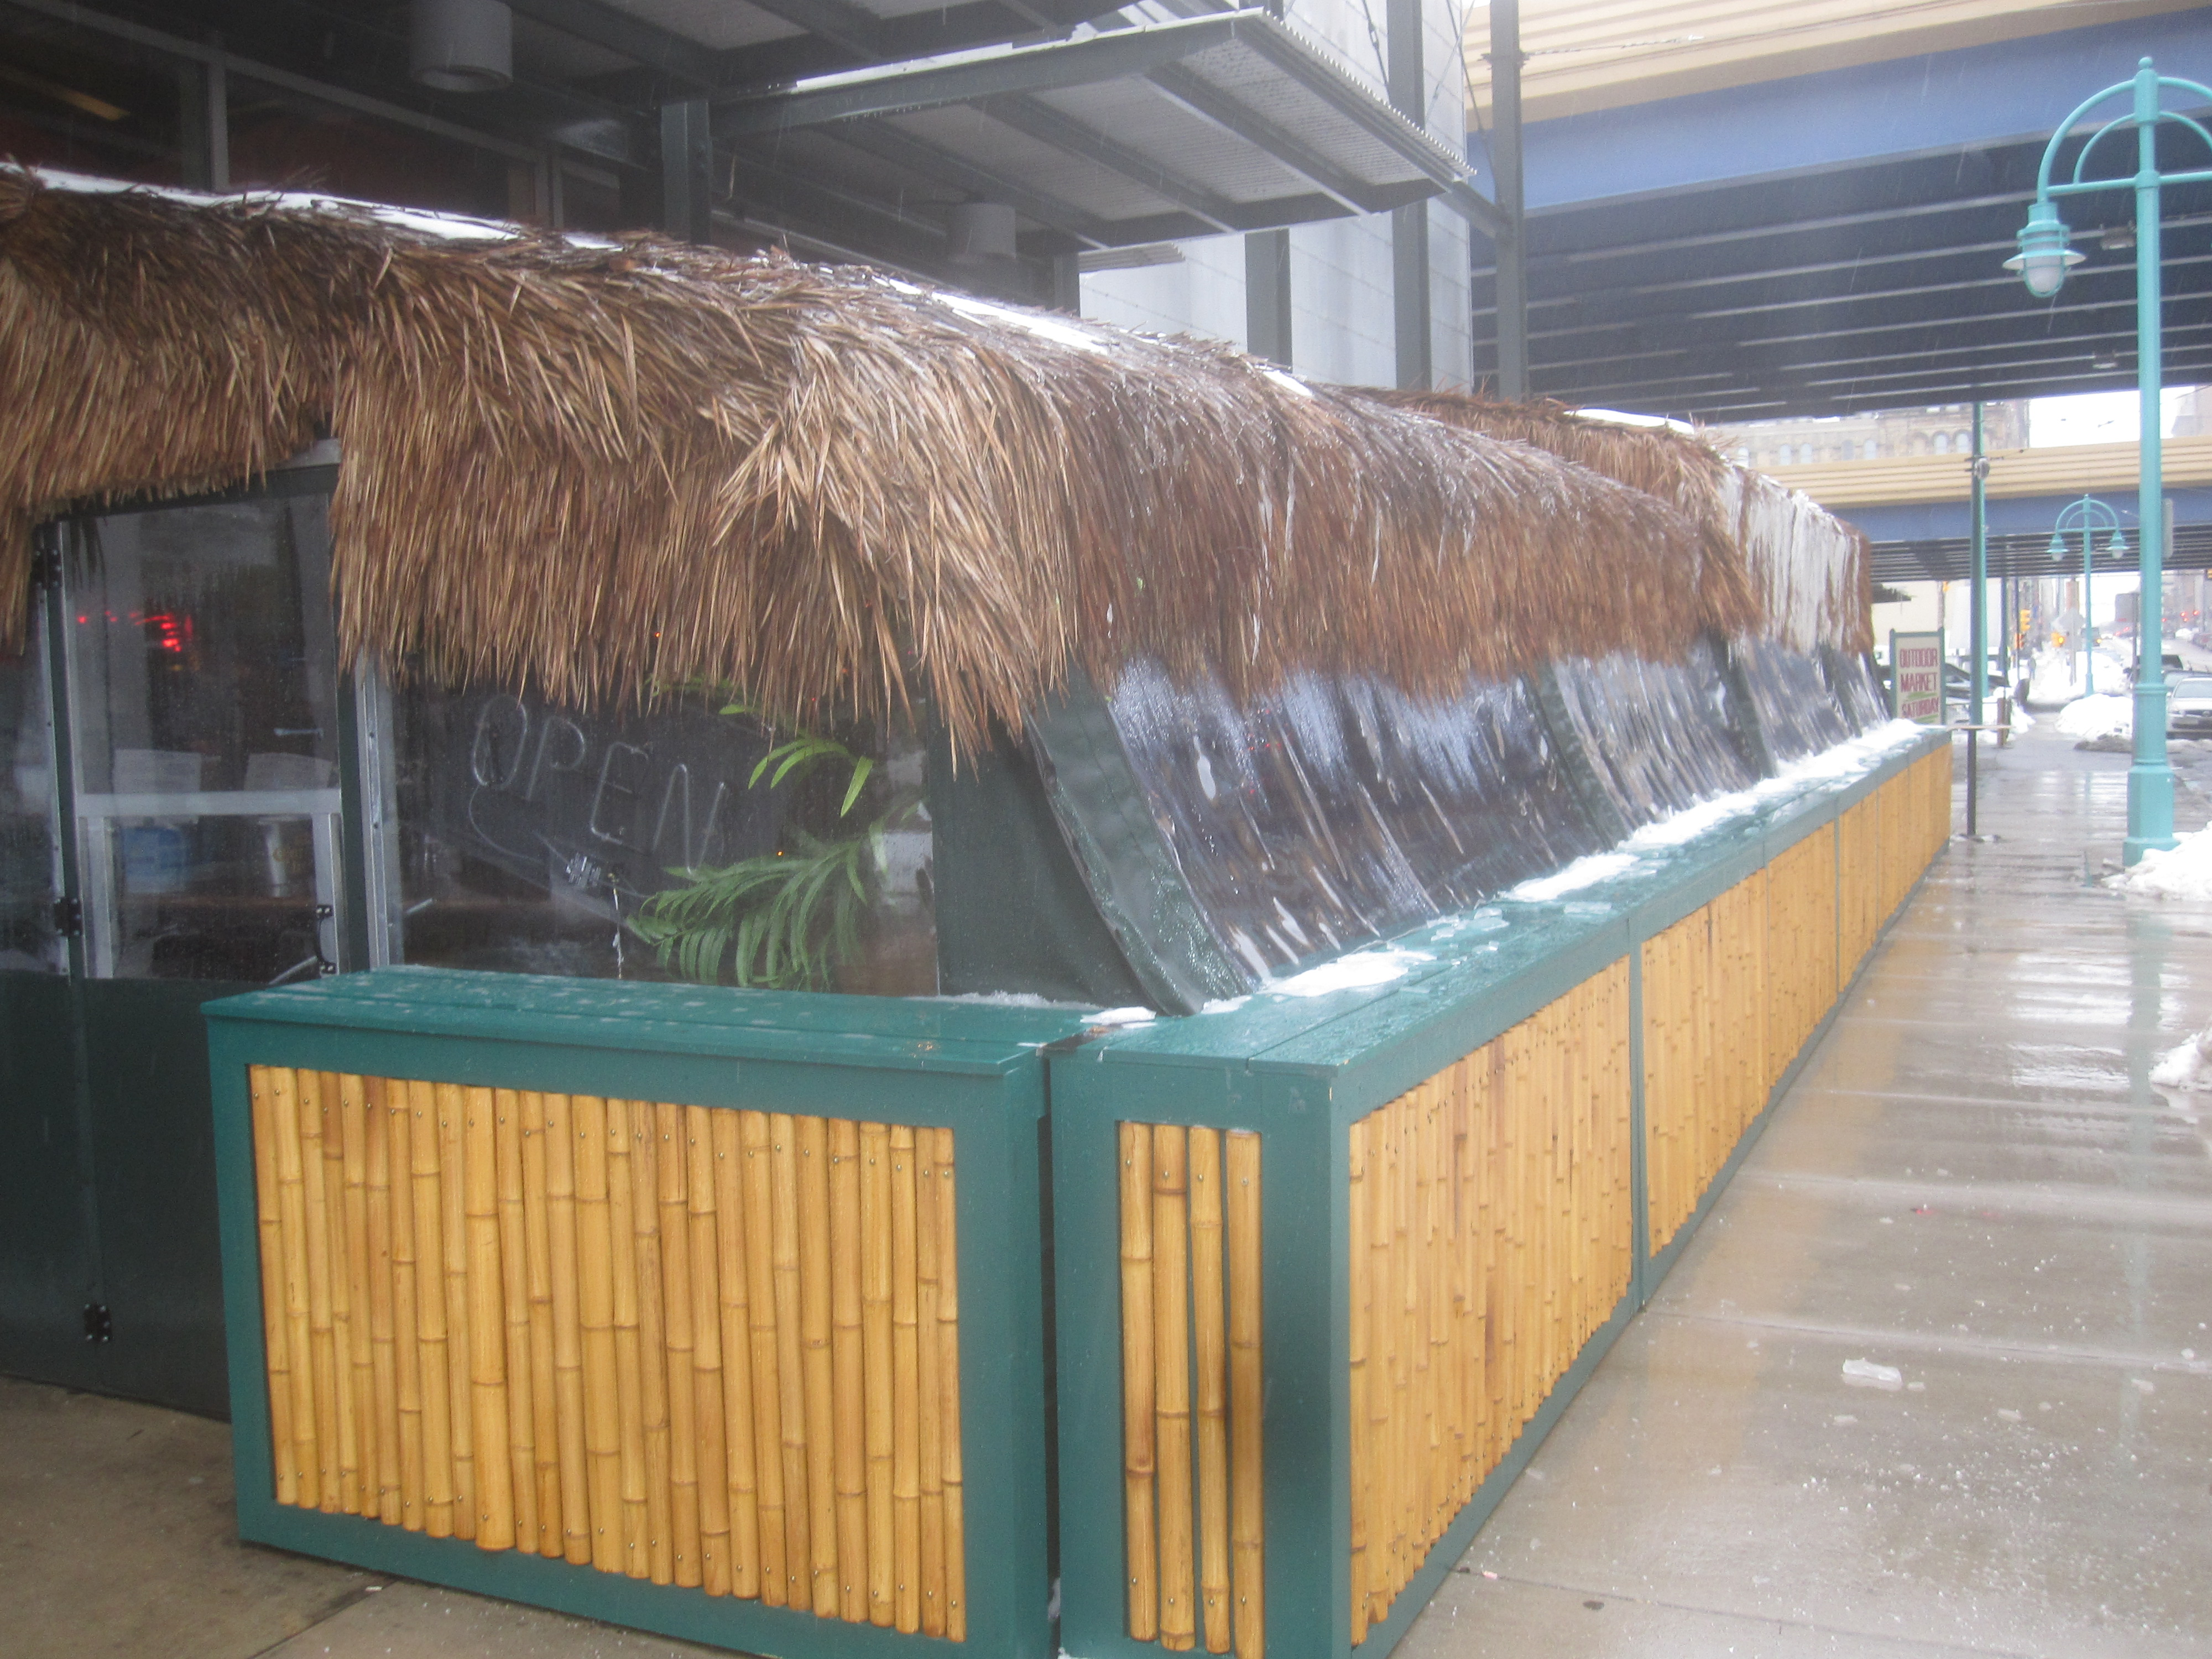 St. Paul Fish Company Palapa Bar. Photo by Michael Horne.